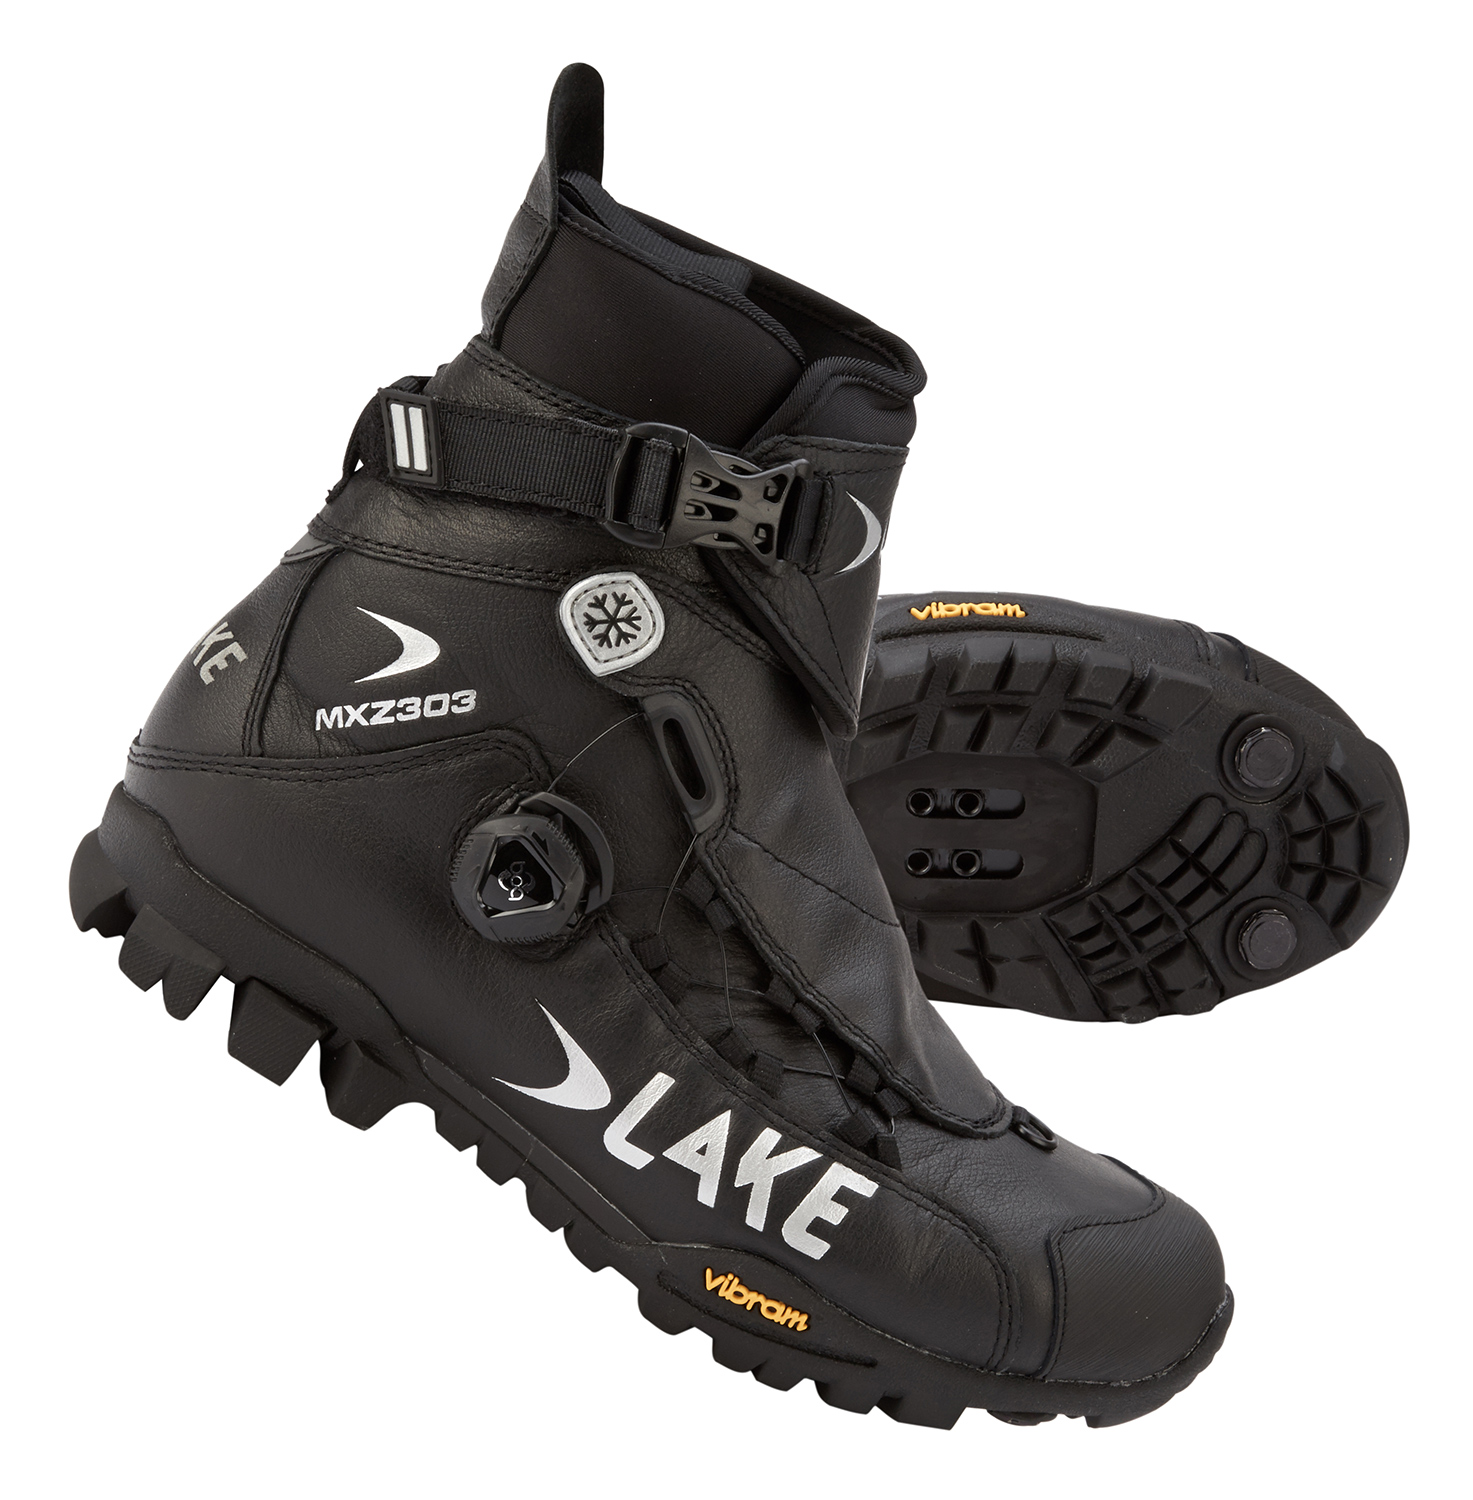 Lake MXZ303 - MTB vinterstøvle - Sort | Shoes and overlays